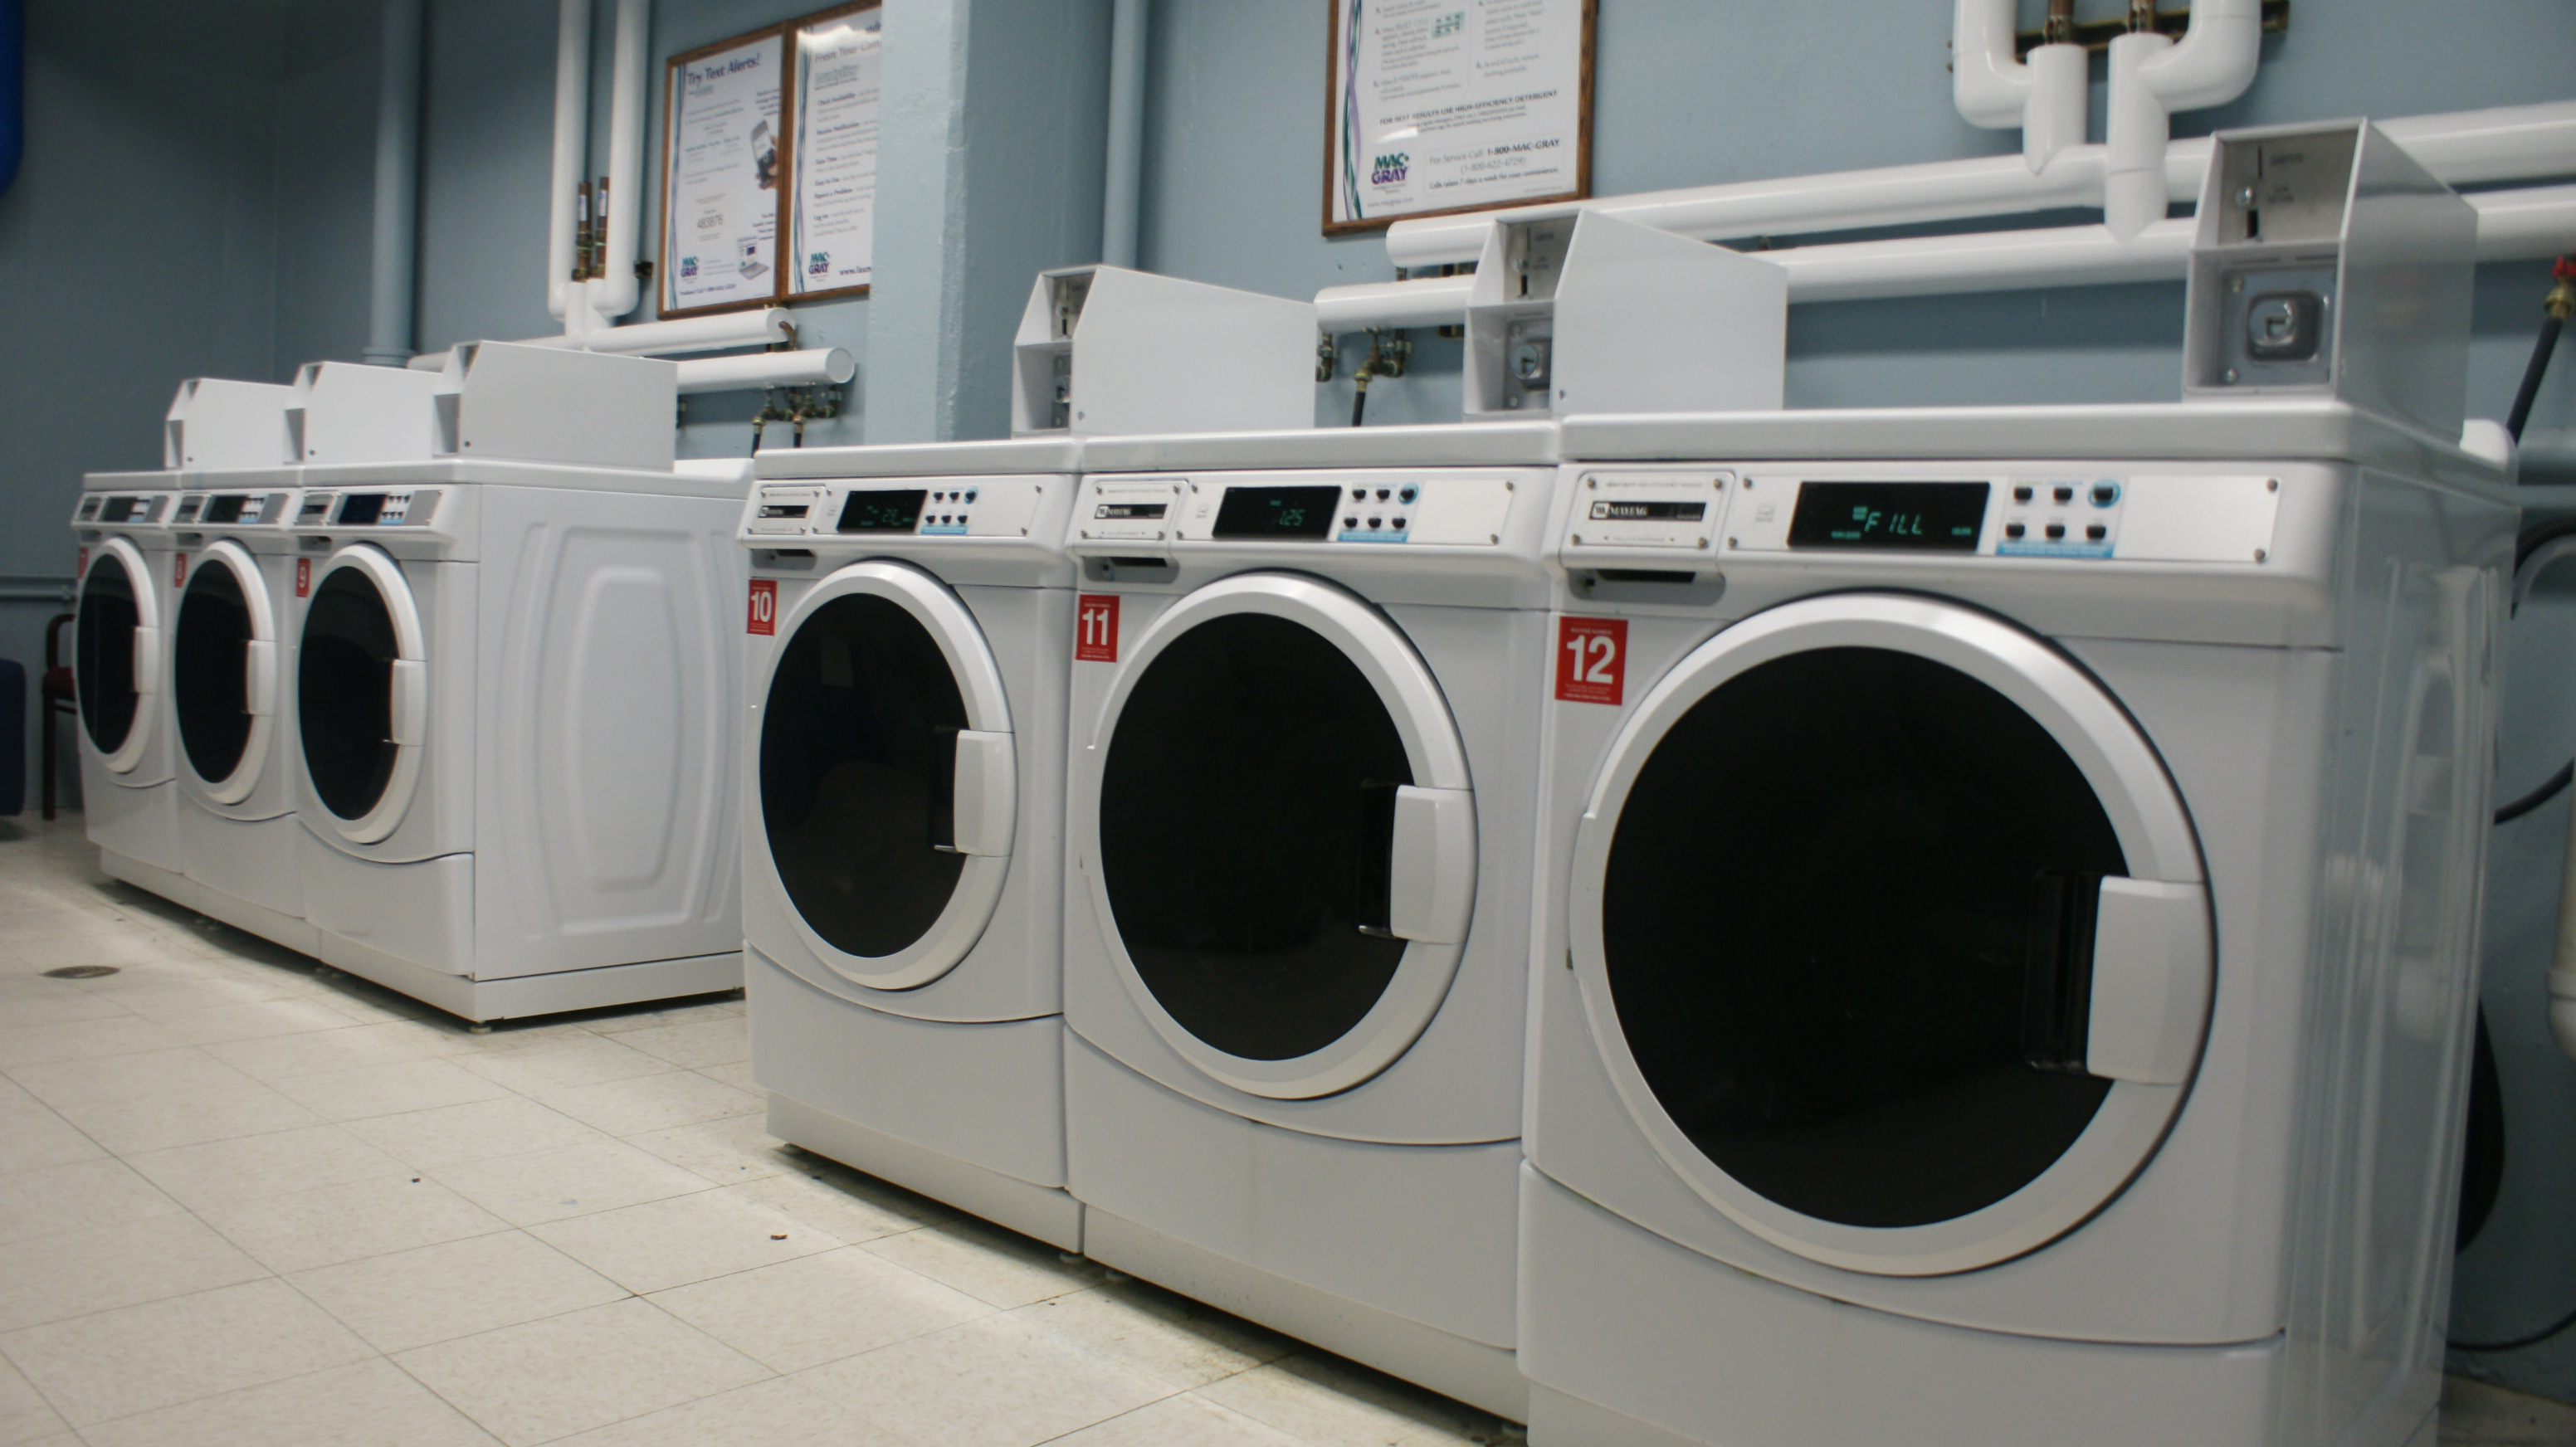 Laundry Room / central boarding acad